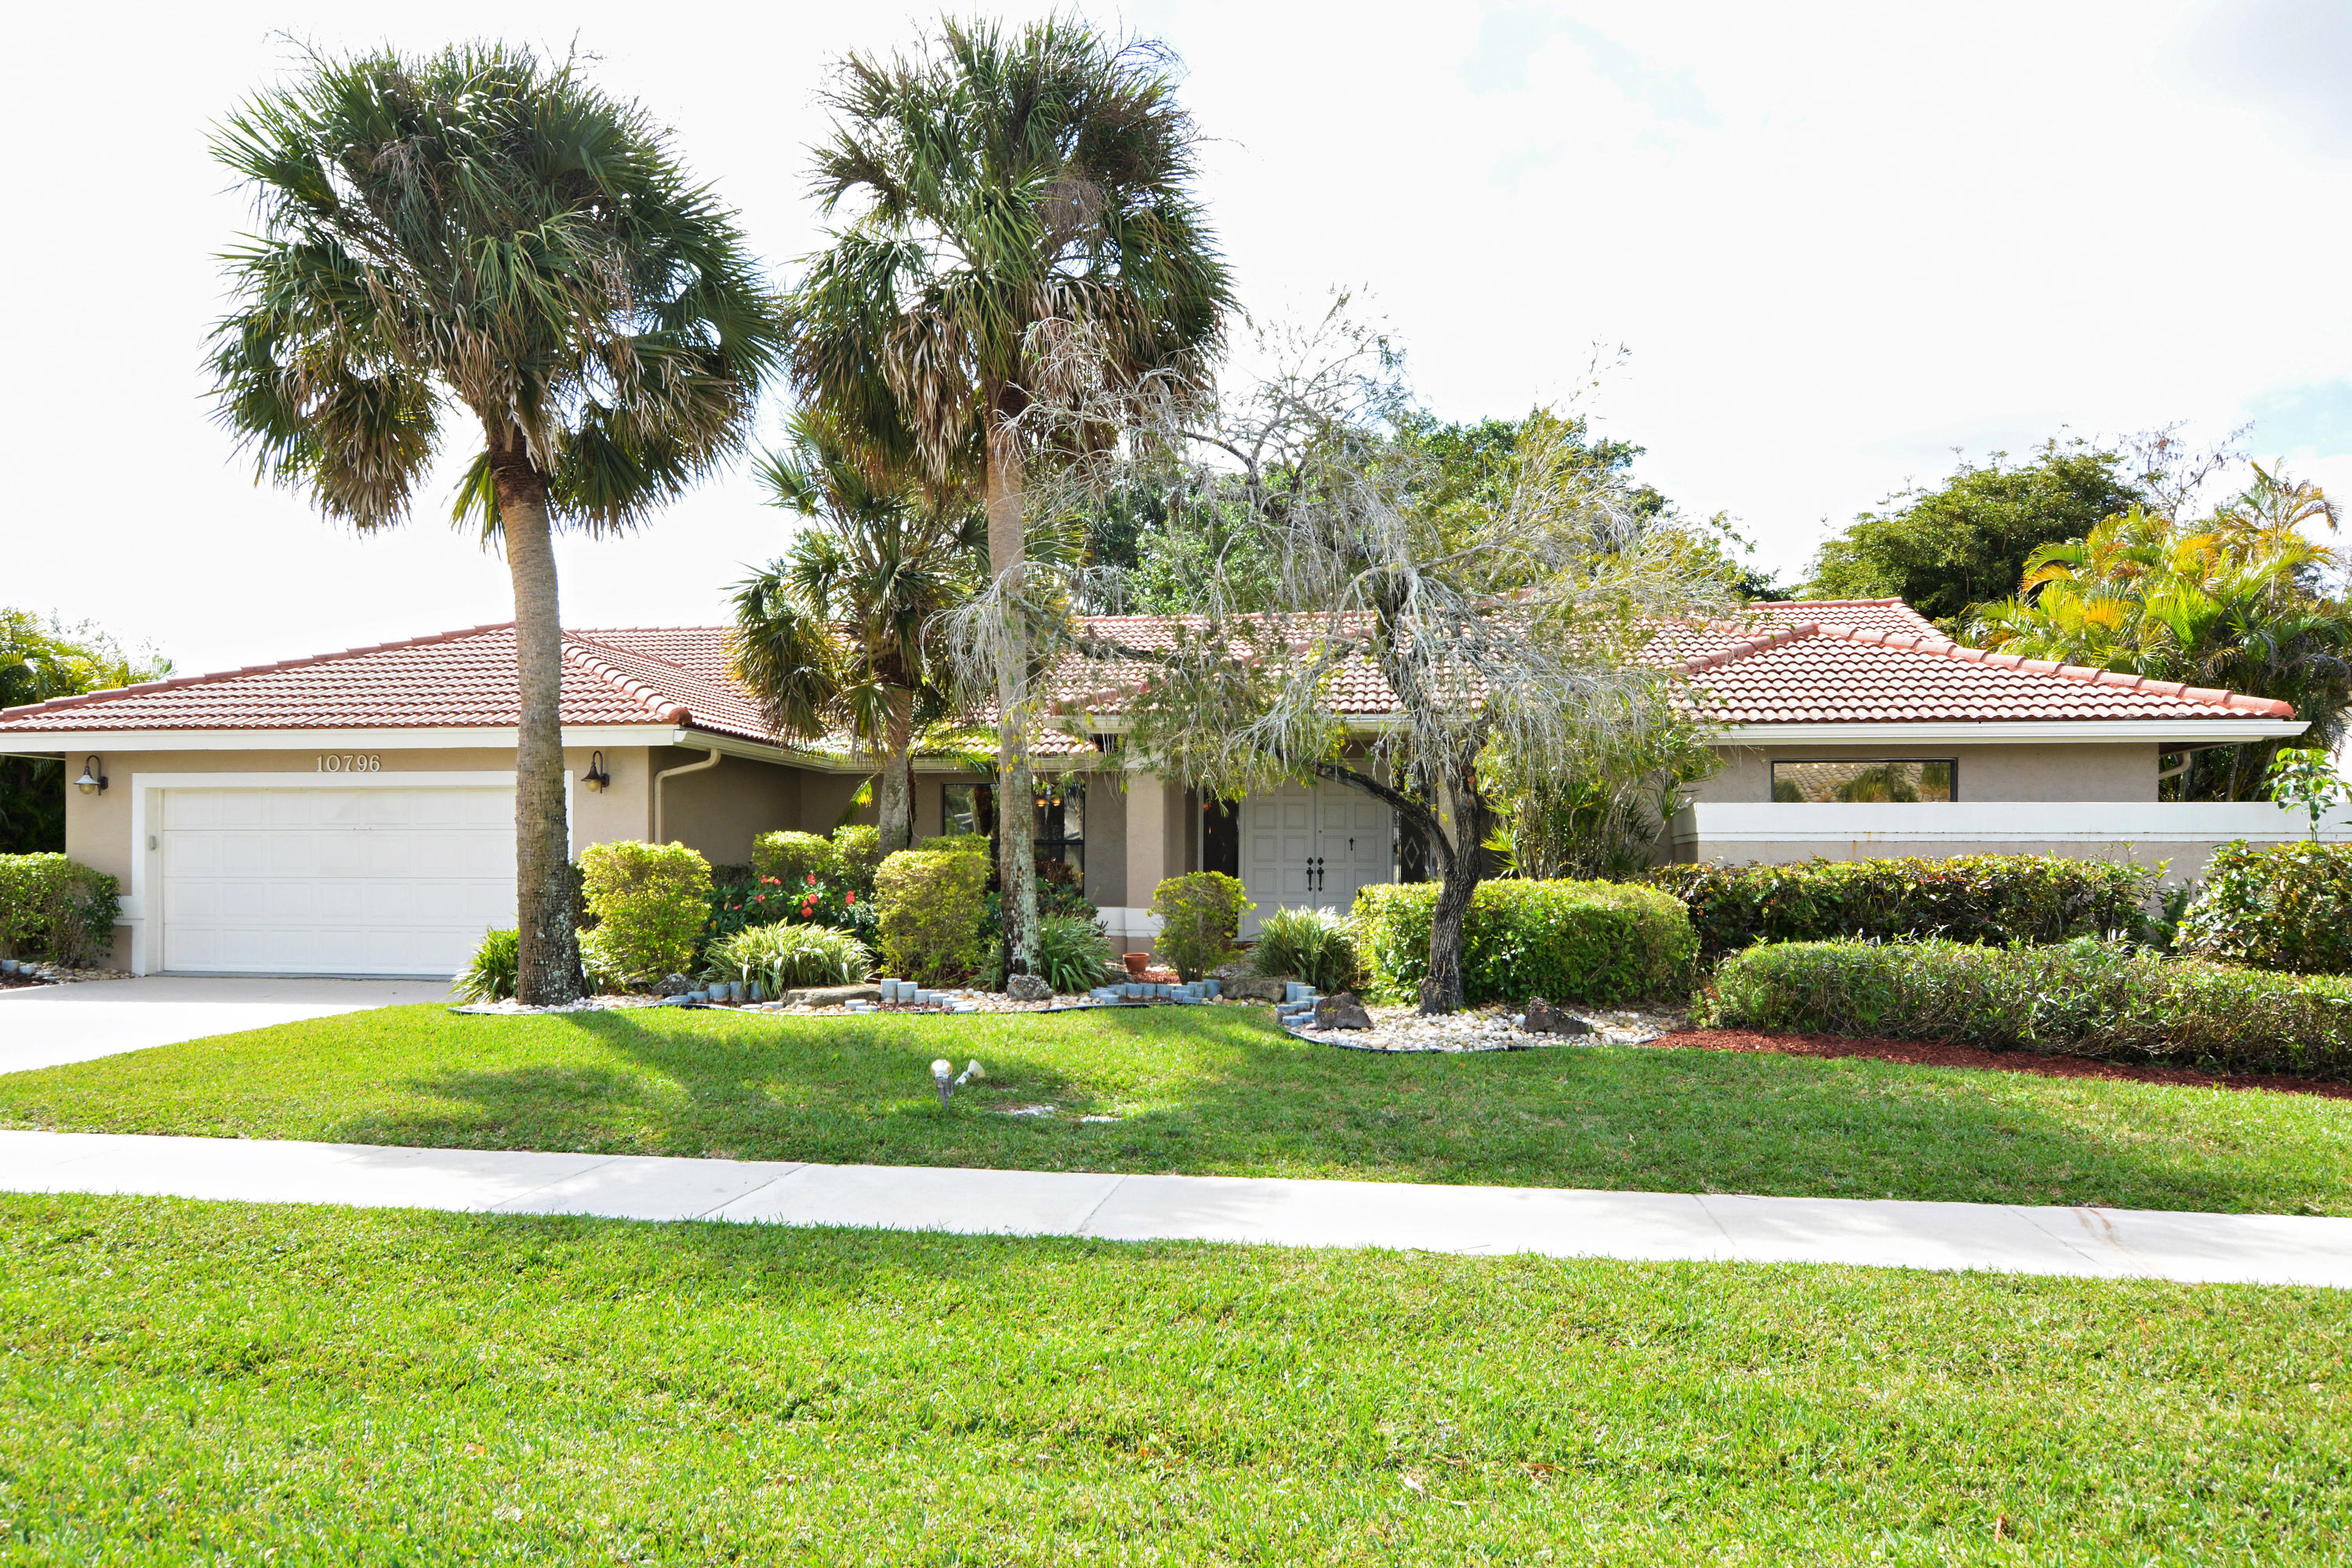 Home for sale in Boca Woods Woods Country Club Boca Raton Florida